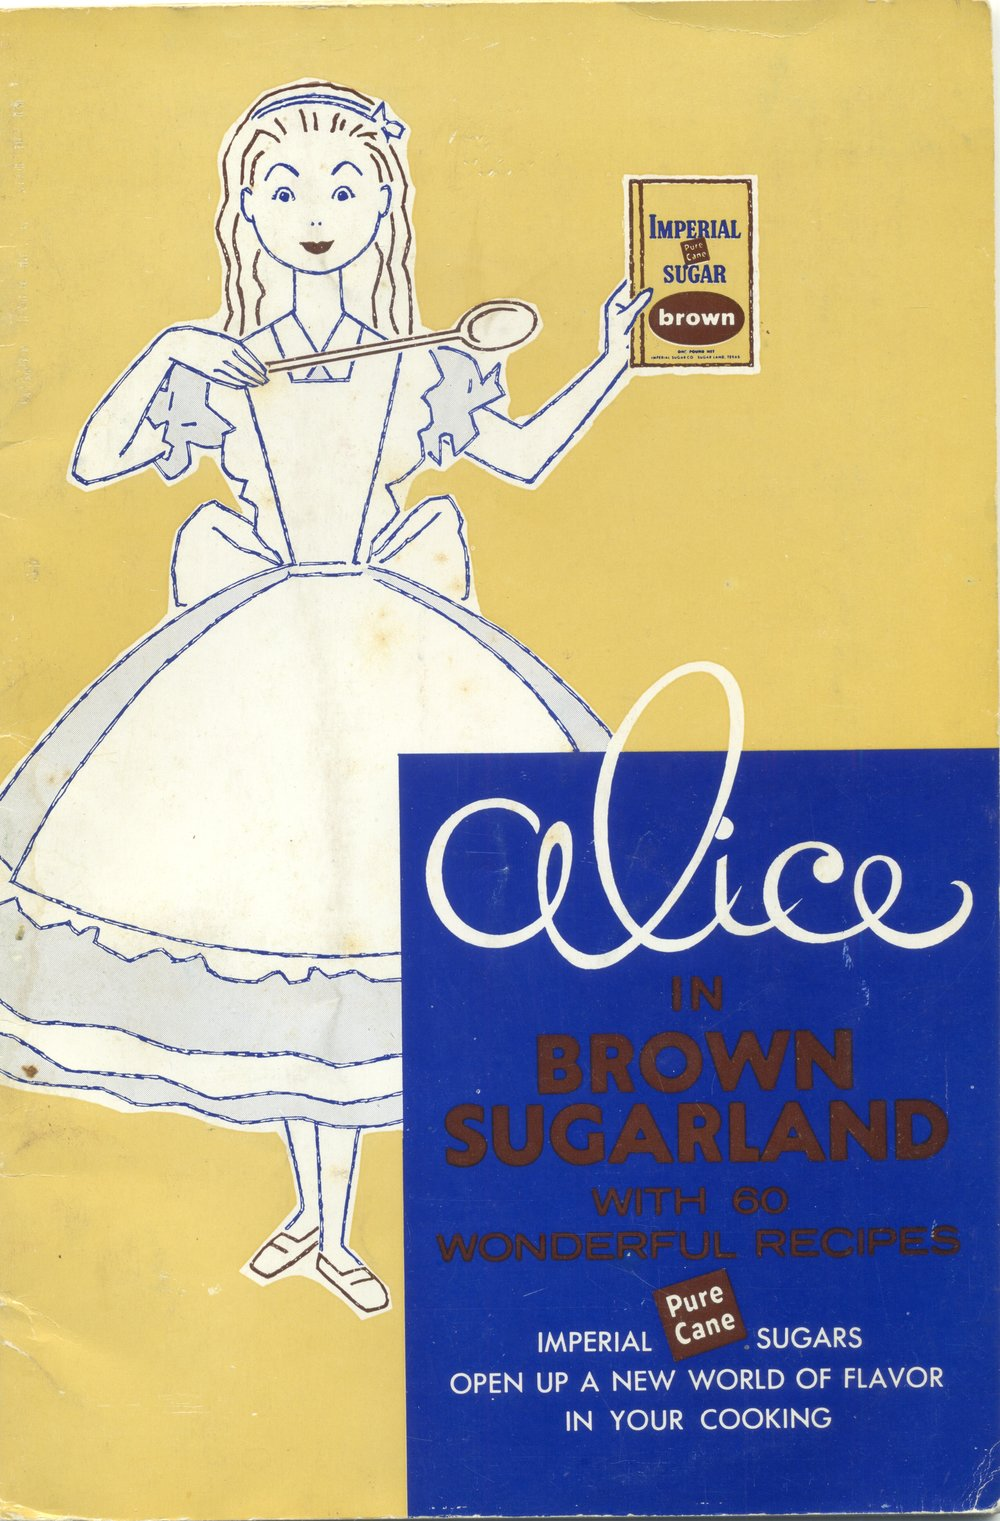 1957 Alice in Brown Sugarland by Imperial Sugar Company ... This booklet was sent to me by my paternal grandmother ... I was just entering high school in 1957